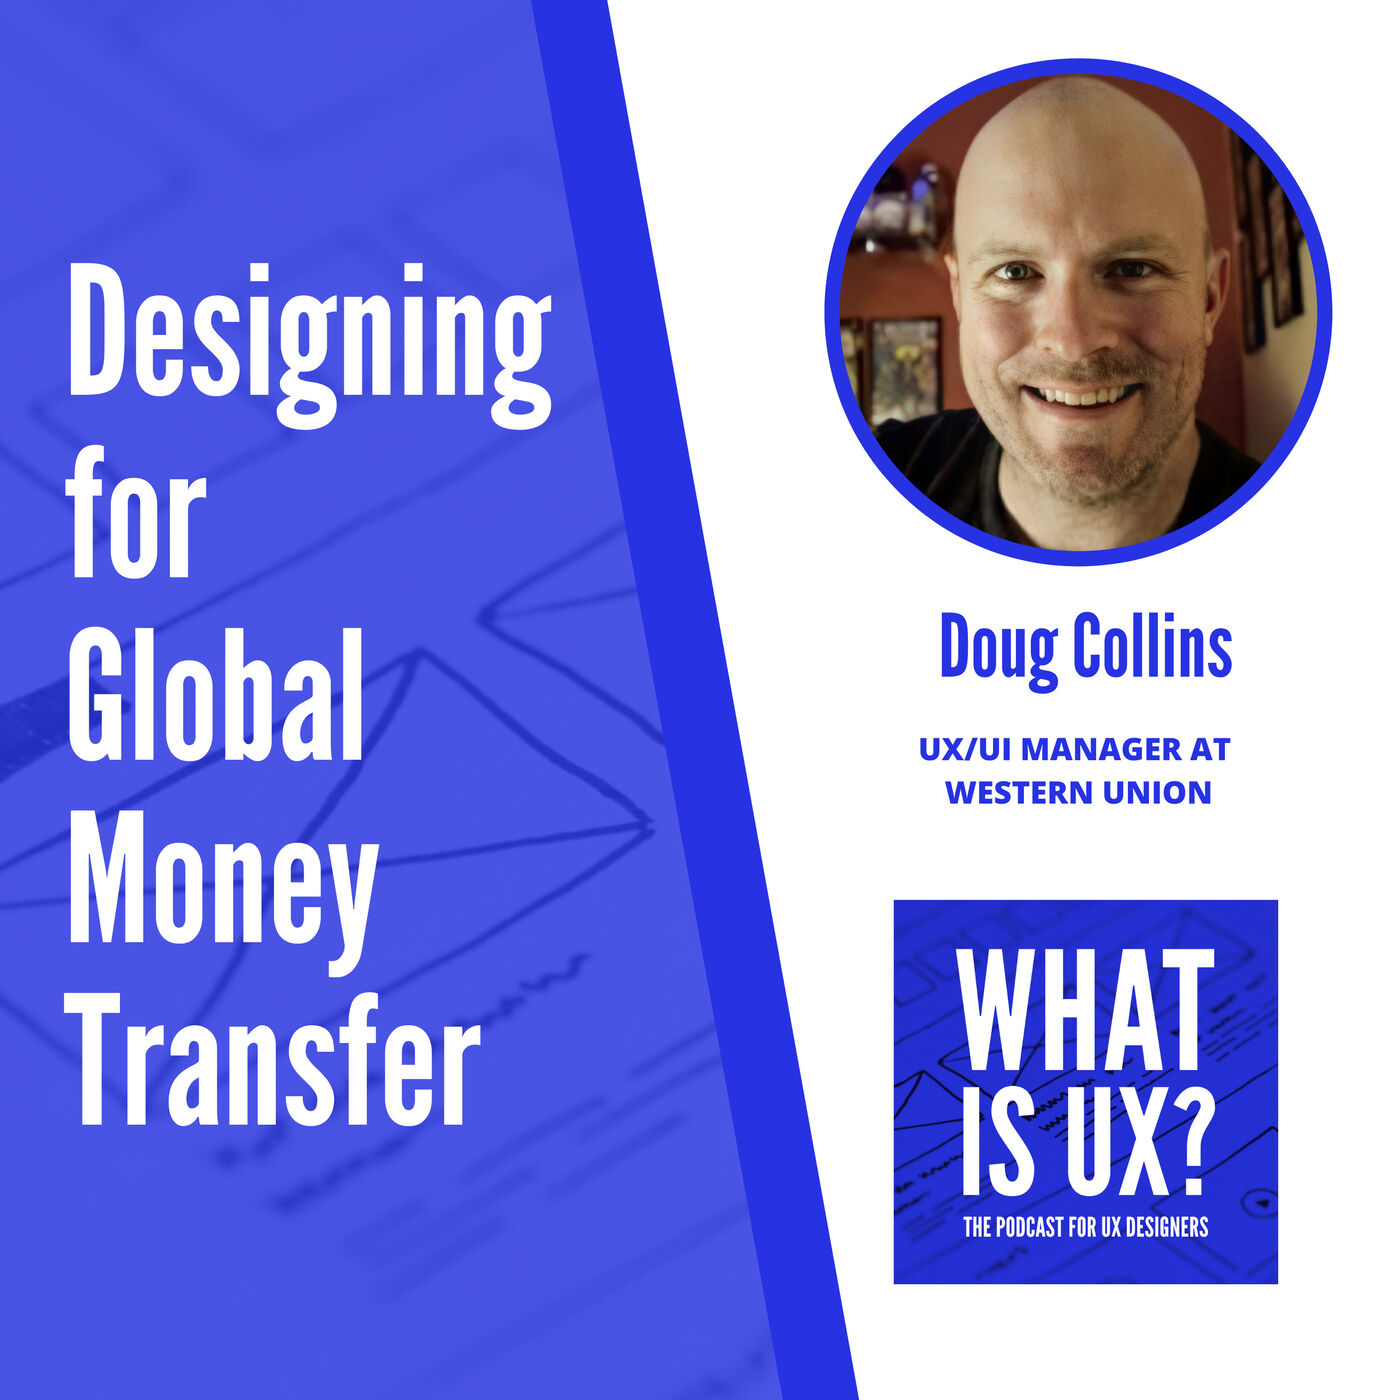 S1E10 Designing for Global Money Transfer with Doug Collins, UX/UI Manager at Western Union